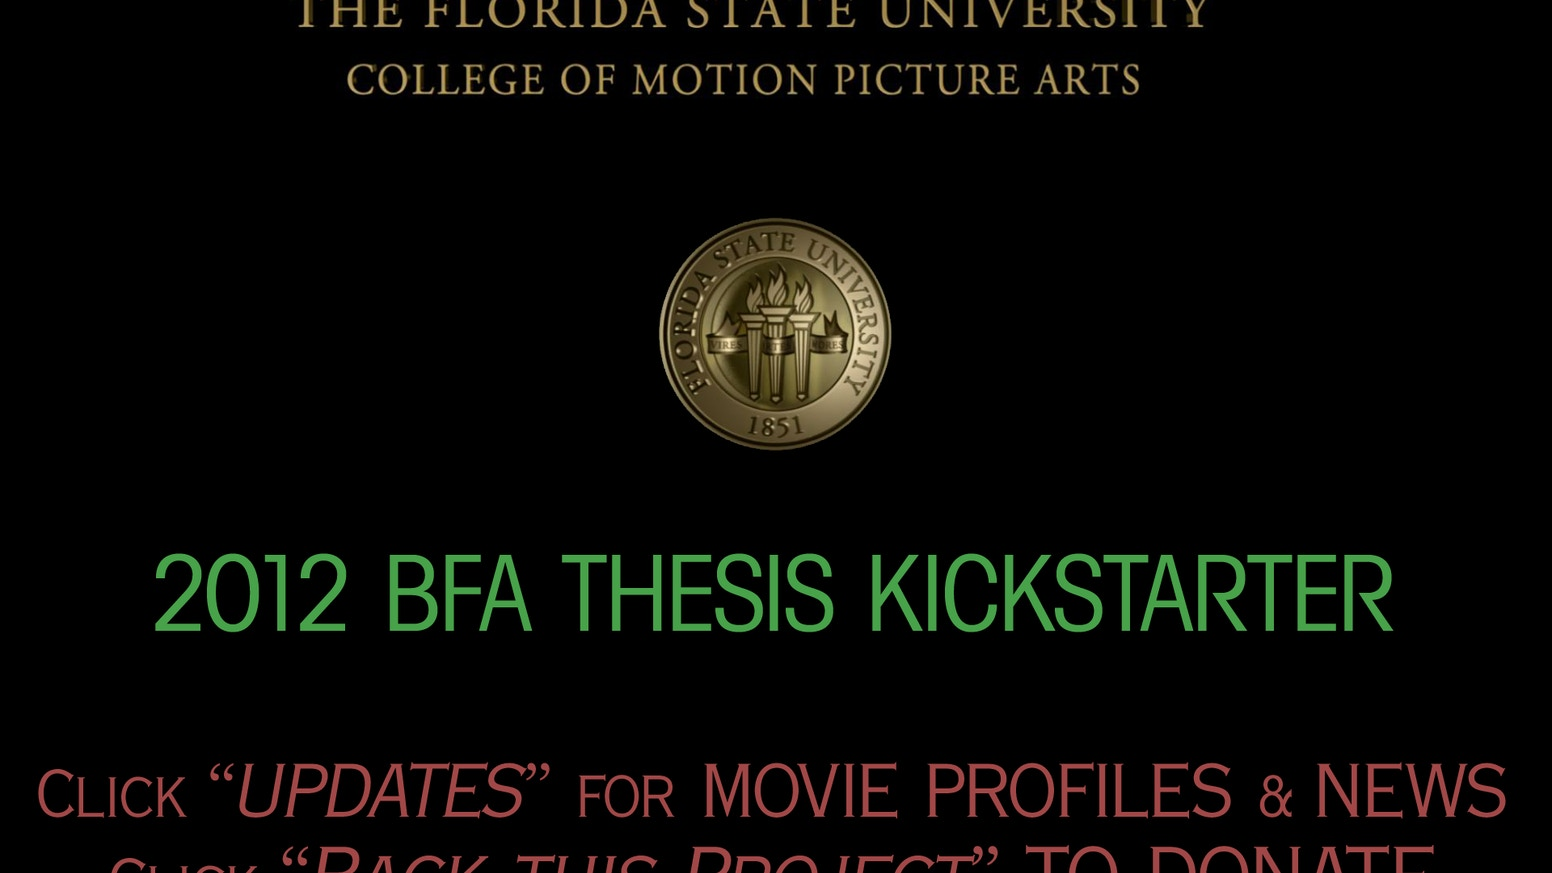 fsu film school bfa thesis The fsu film fundraiser for bfa thesis 2015 aims to raise $25,000 to assist in the costs that it takes to get a script on the big screen funds raised will be divided equally to each student and their show.